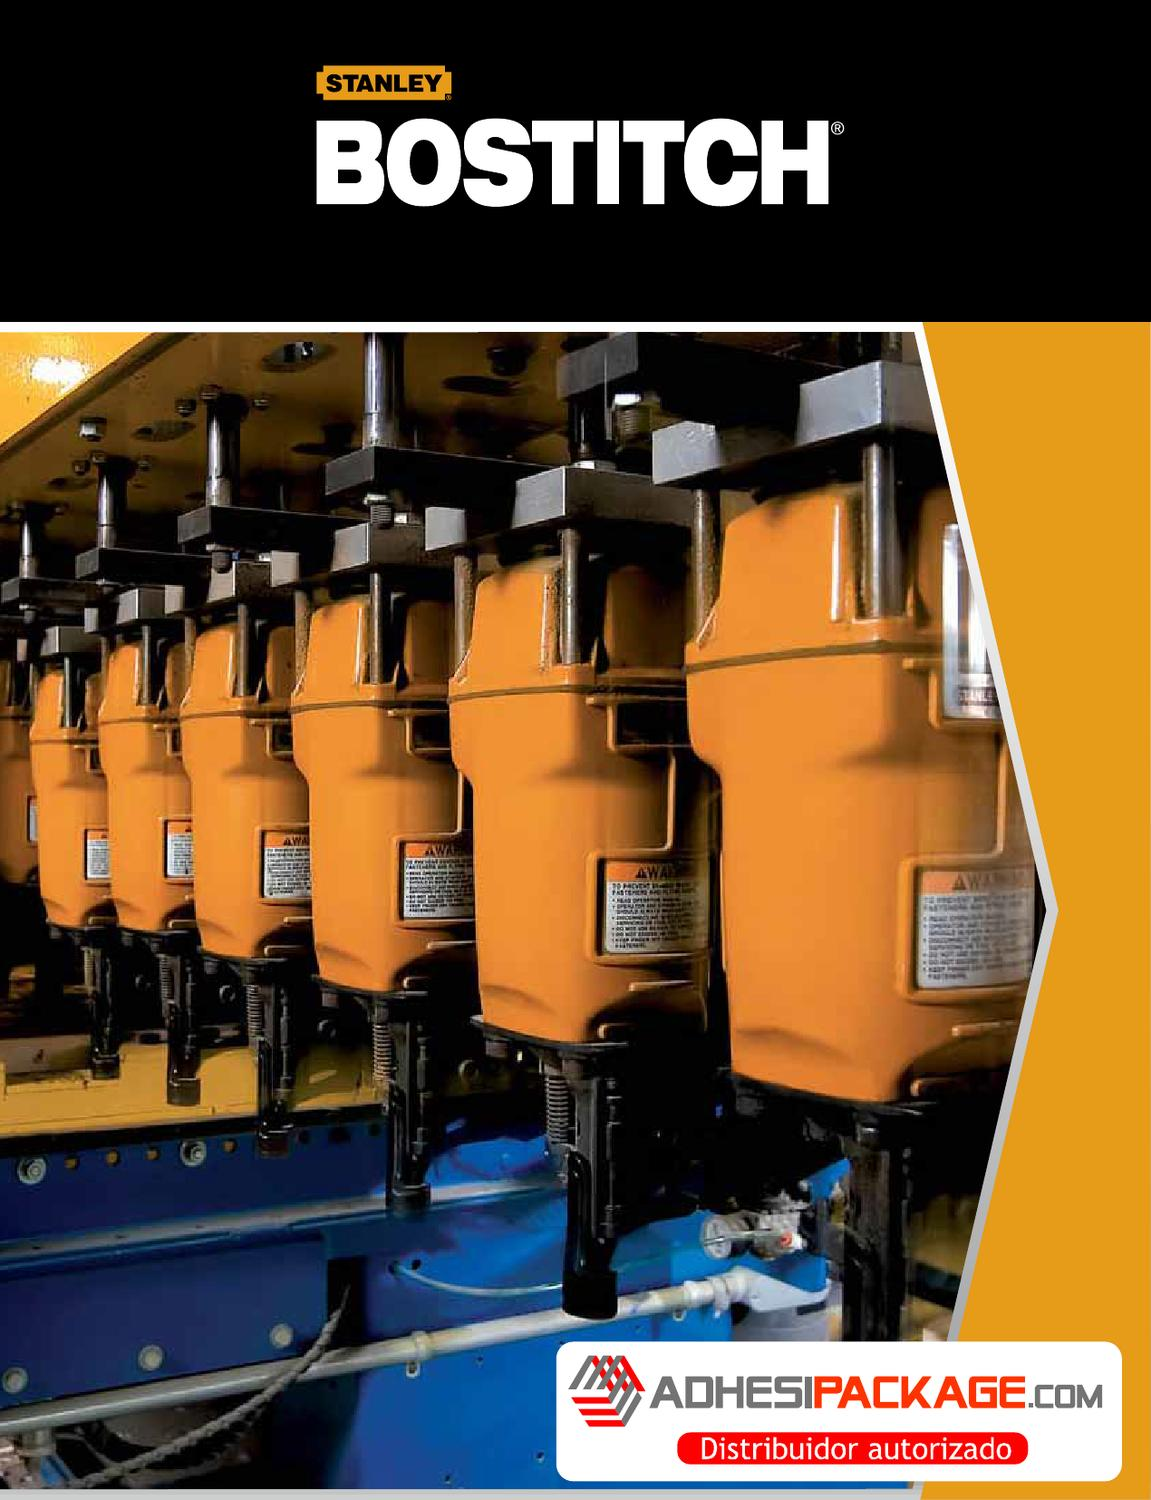 CATALOGO BOSTITCH INDUSTRIAL by Adhesipackage S.A de C.V. - issuu